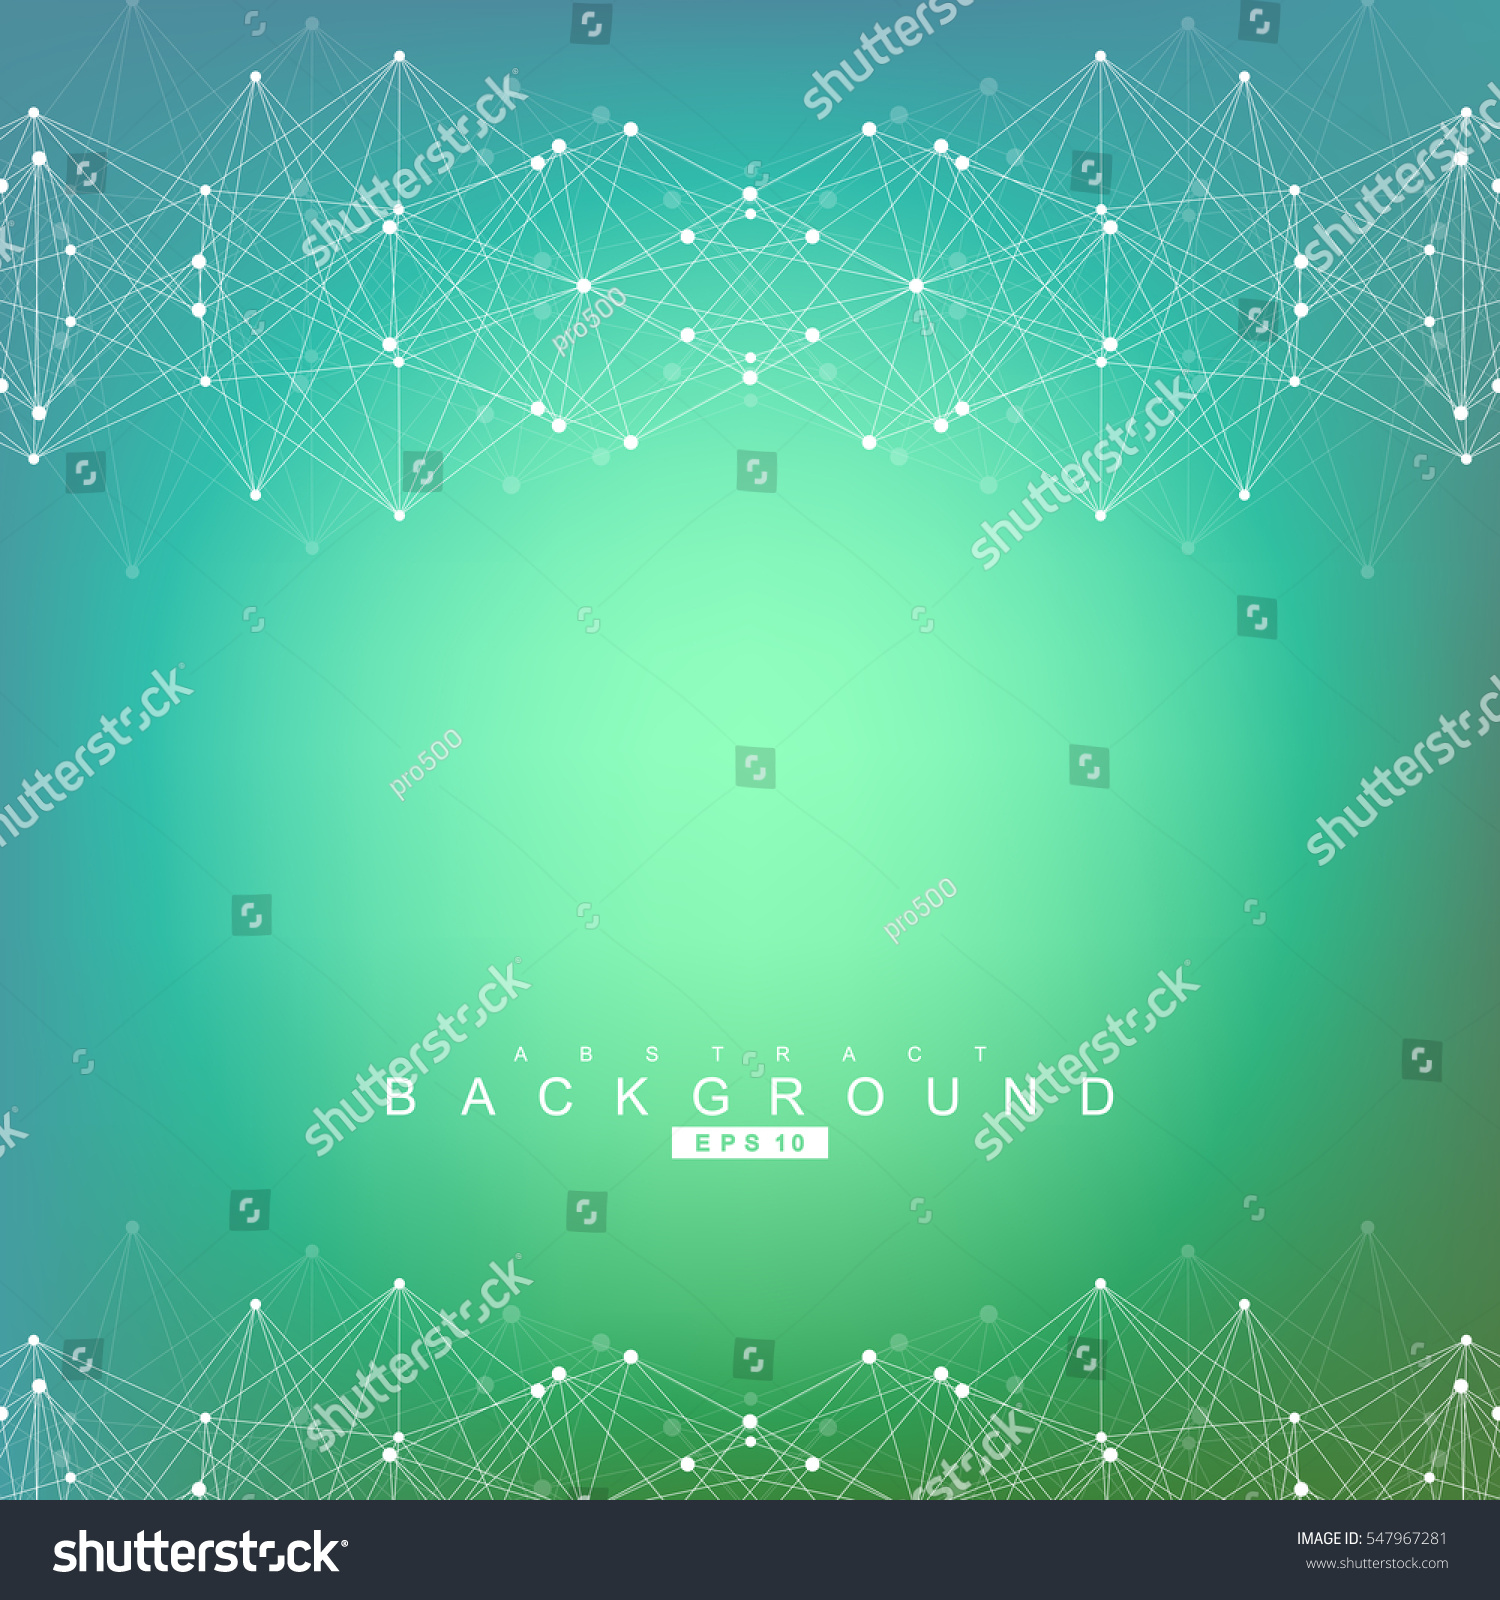 Abstract moving background white dots connected on fresh green stock - Geometric Abstract Background With Connected Line And Dots Structure Molecule And Communication Scientific Concept